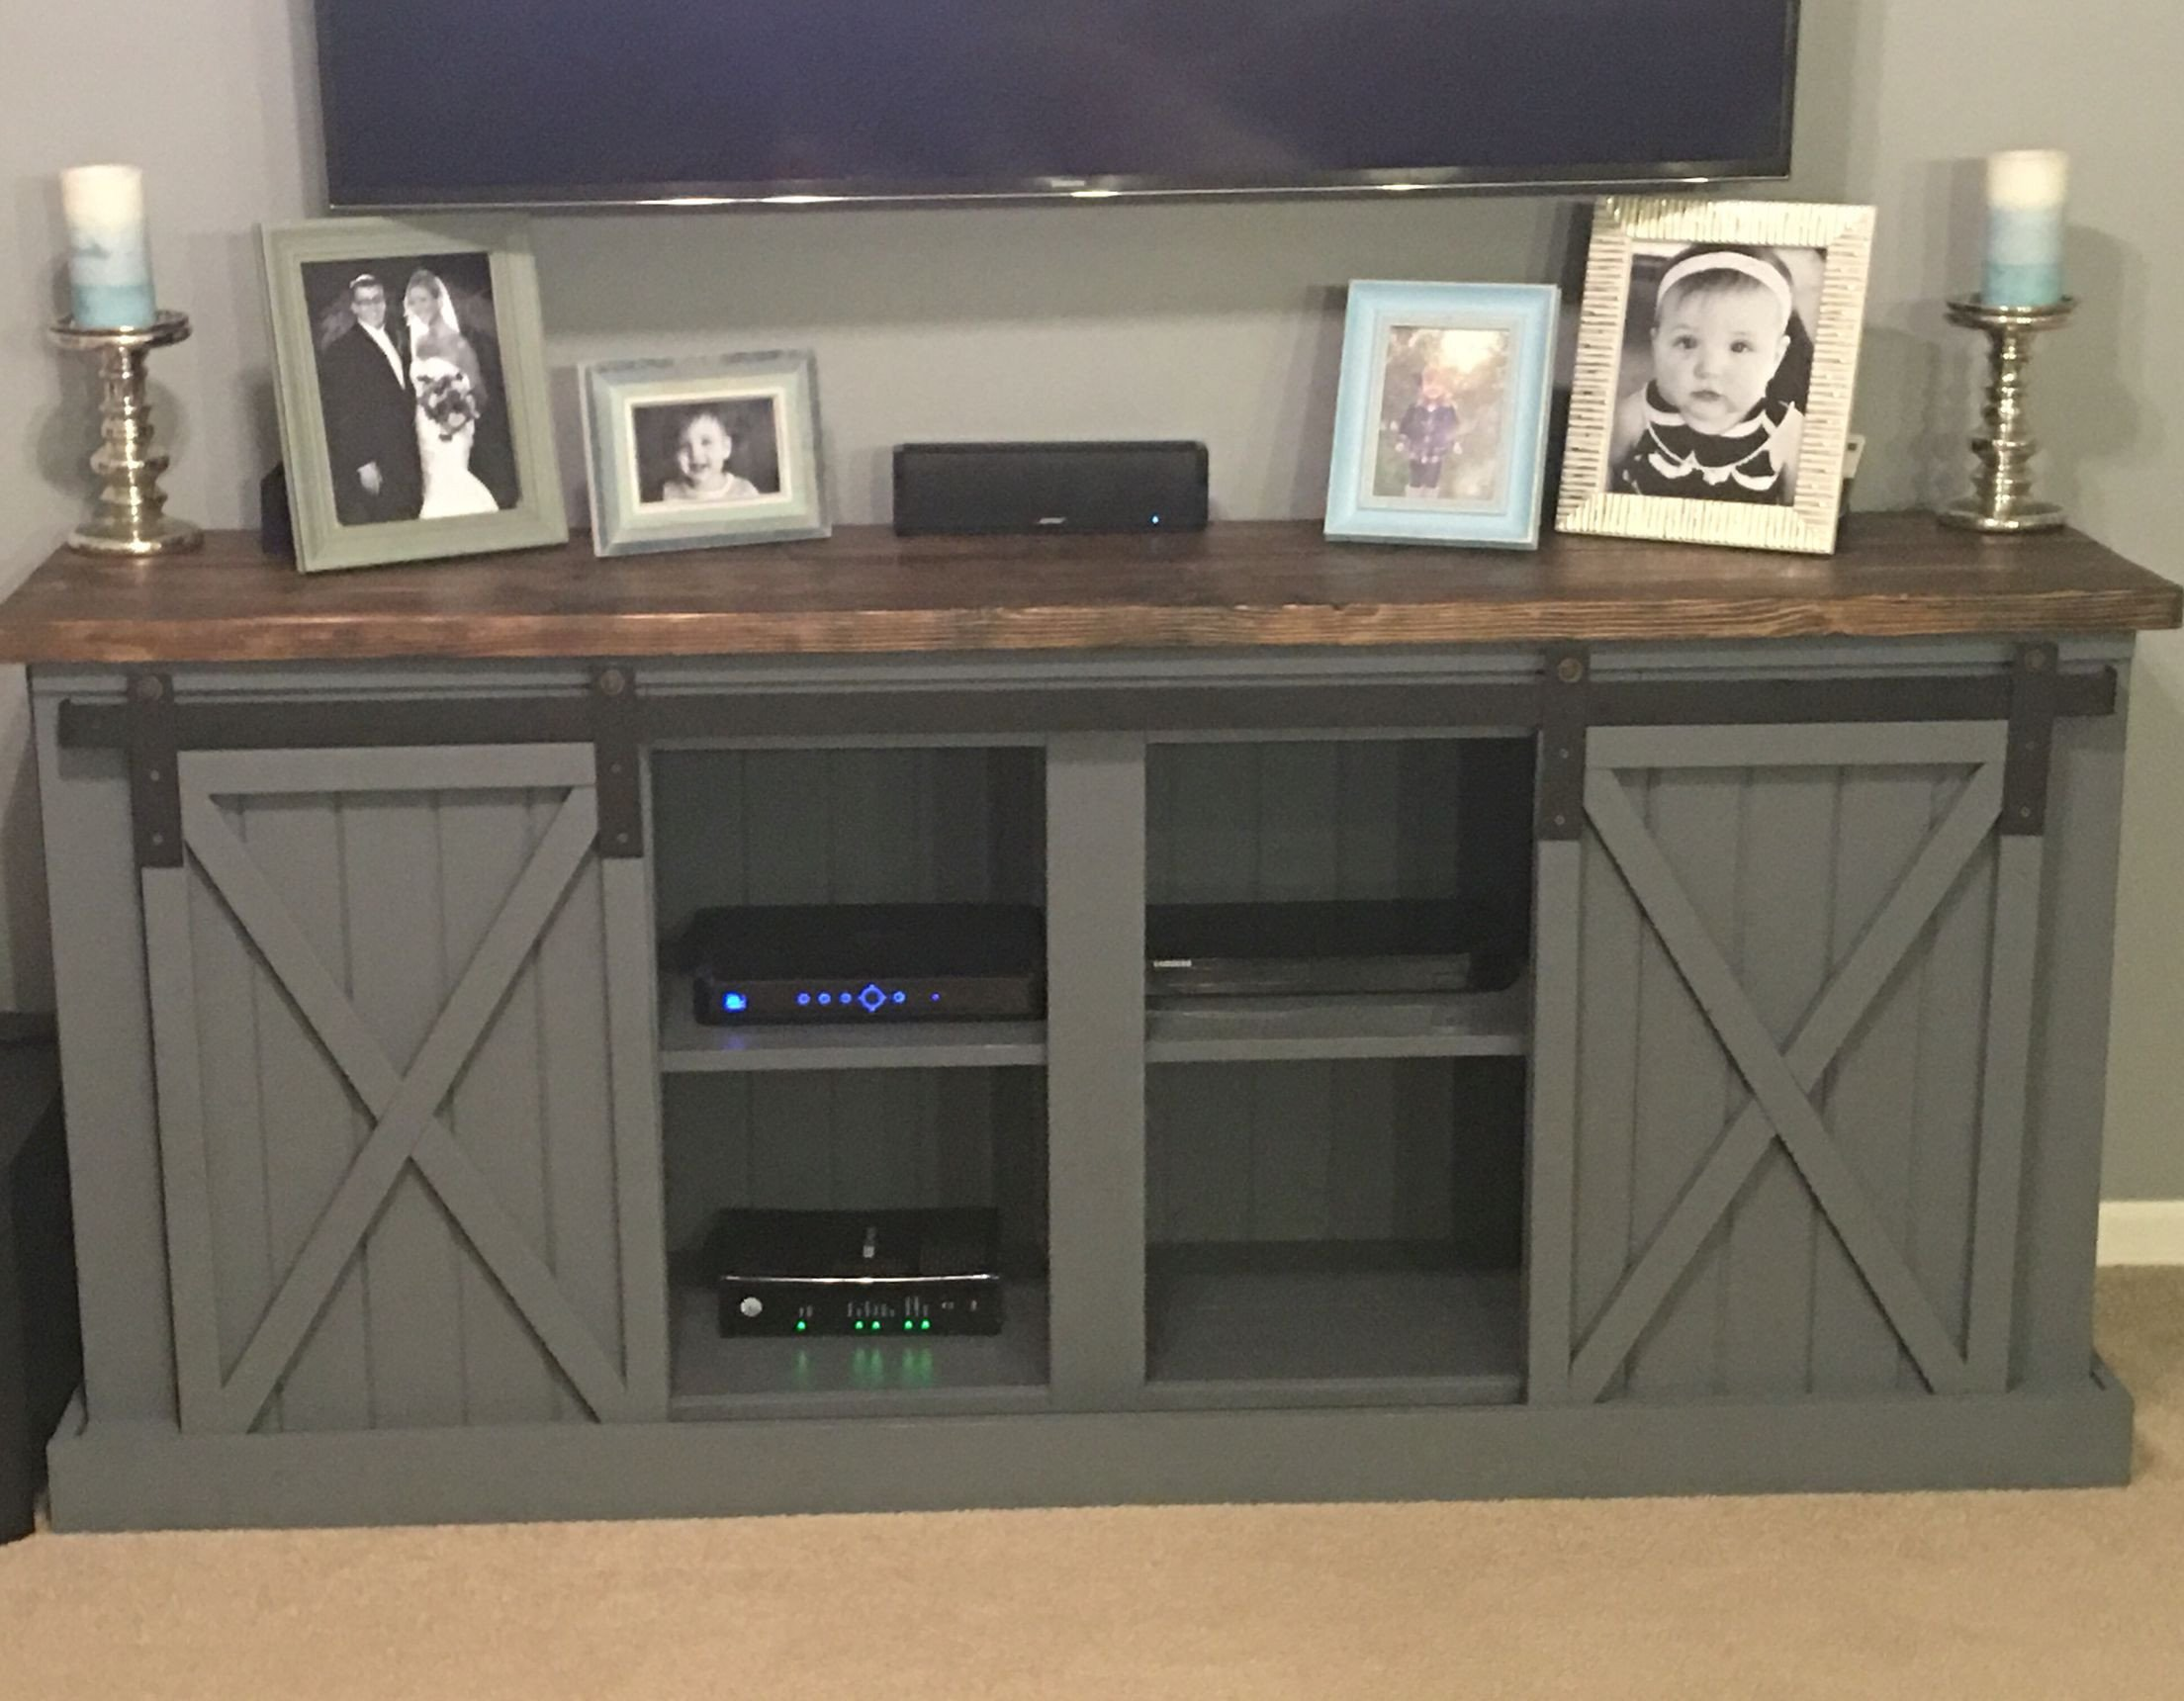 Farmhouse Tv Stand Design Ideas and Decor Awesome 20 Best Diy Entertainment Center Design Ideas for Living Room Home & Decor In 2019